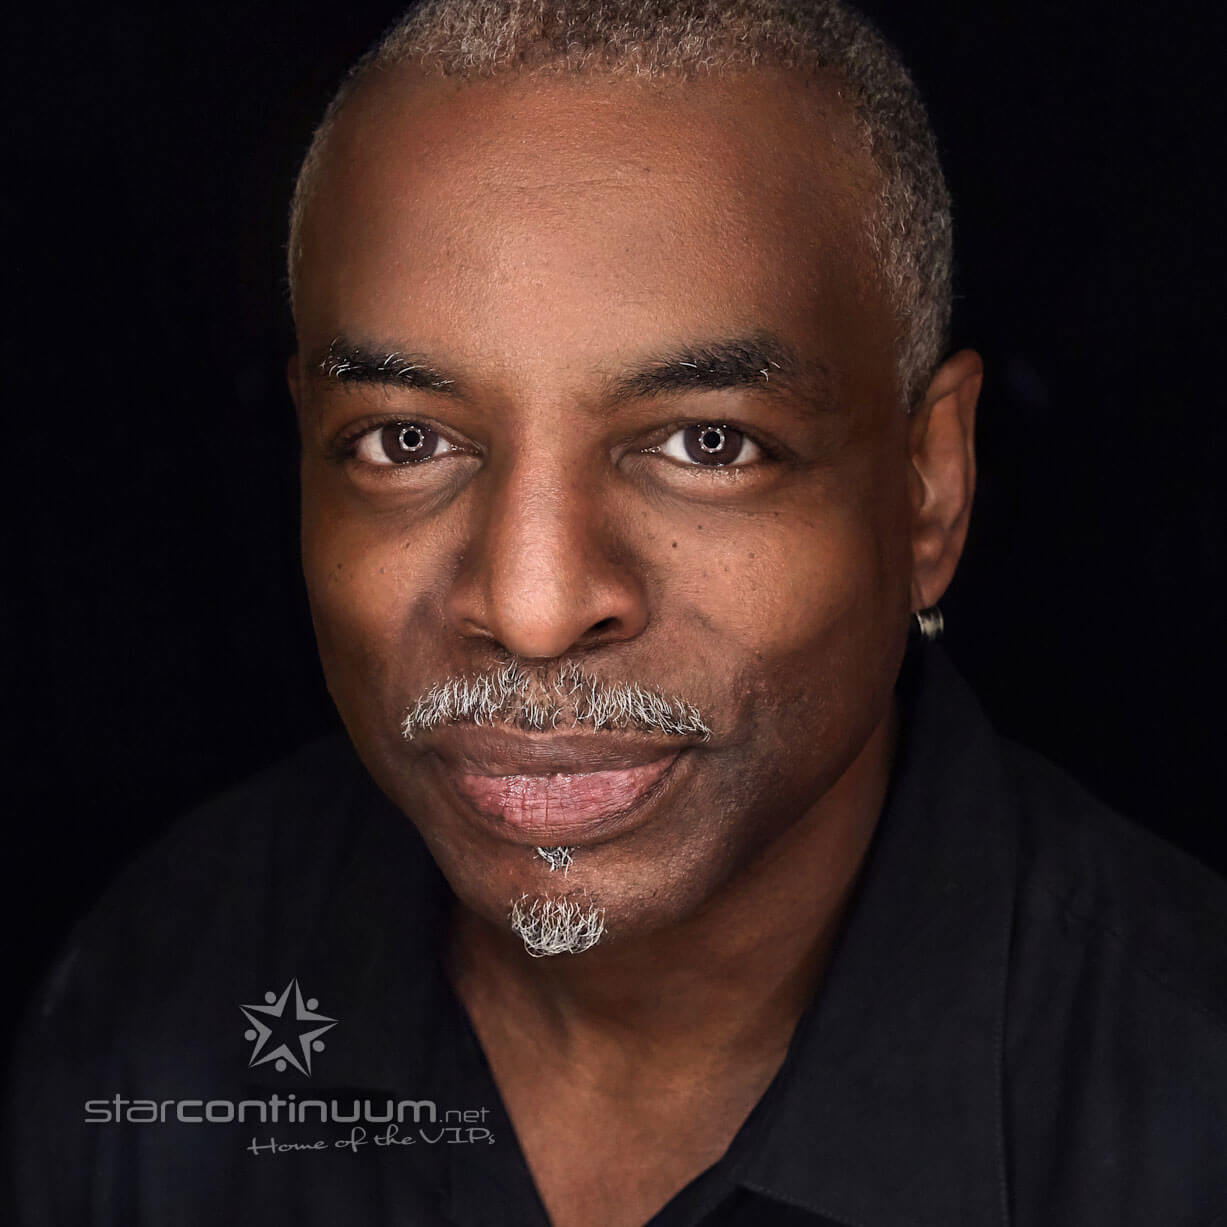 starcontinuum.net | Faces | Levar Burton